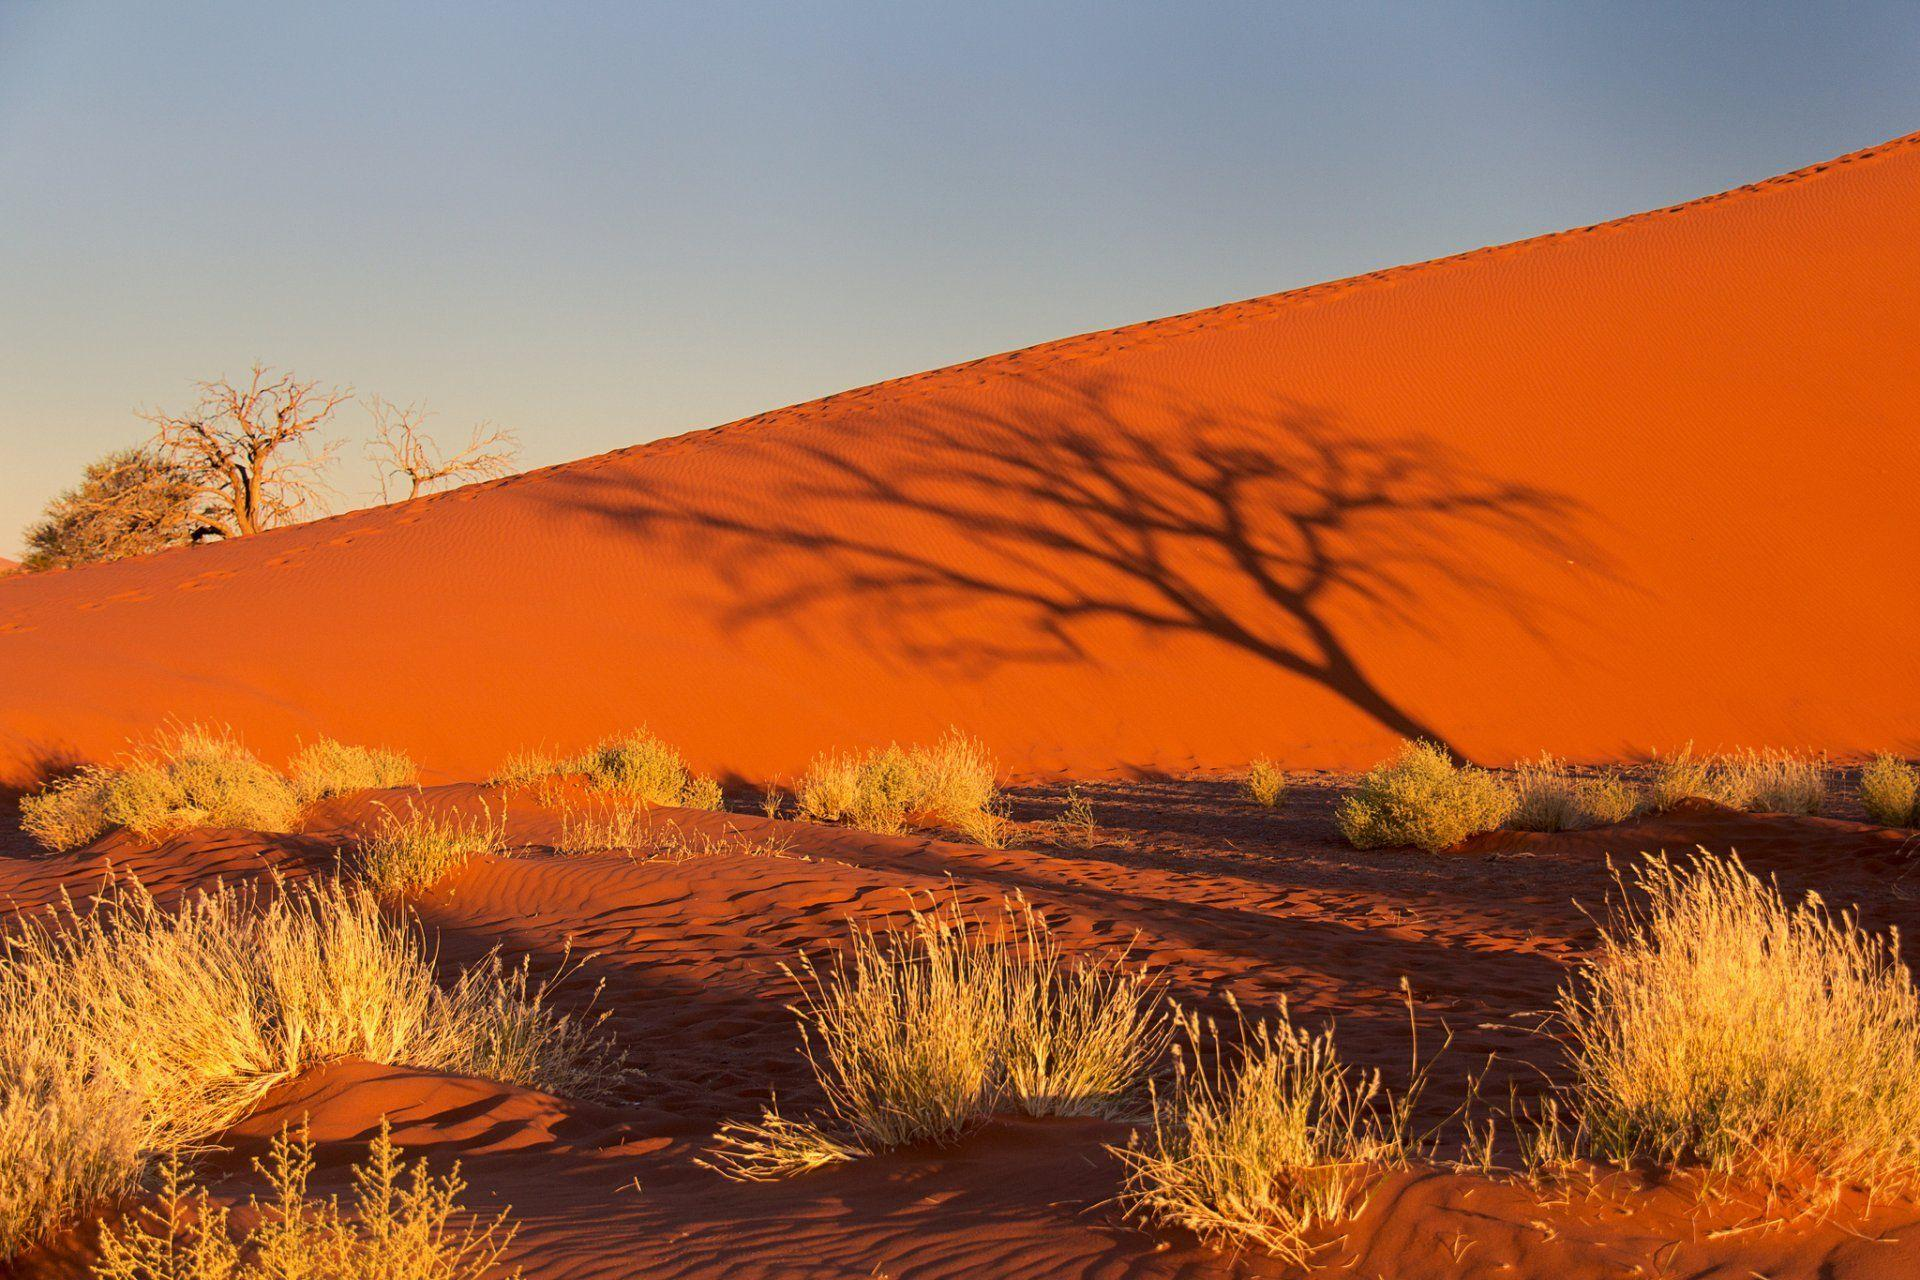 namibia africa namib desert sky sunset shadow tree bush sand dune ...